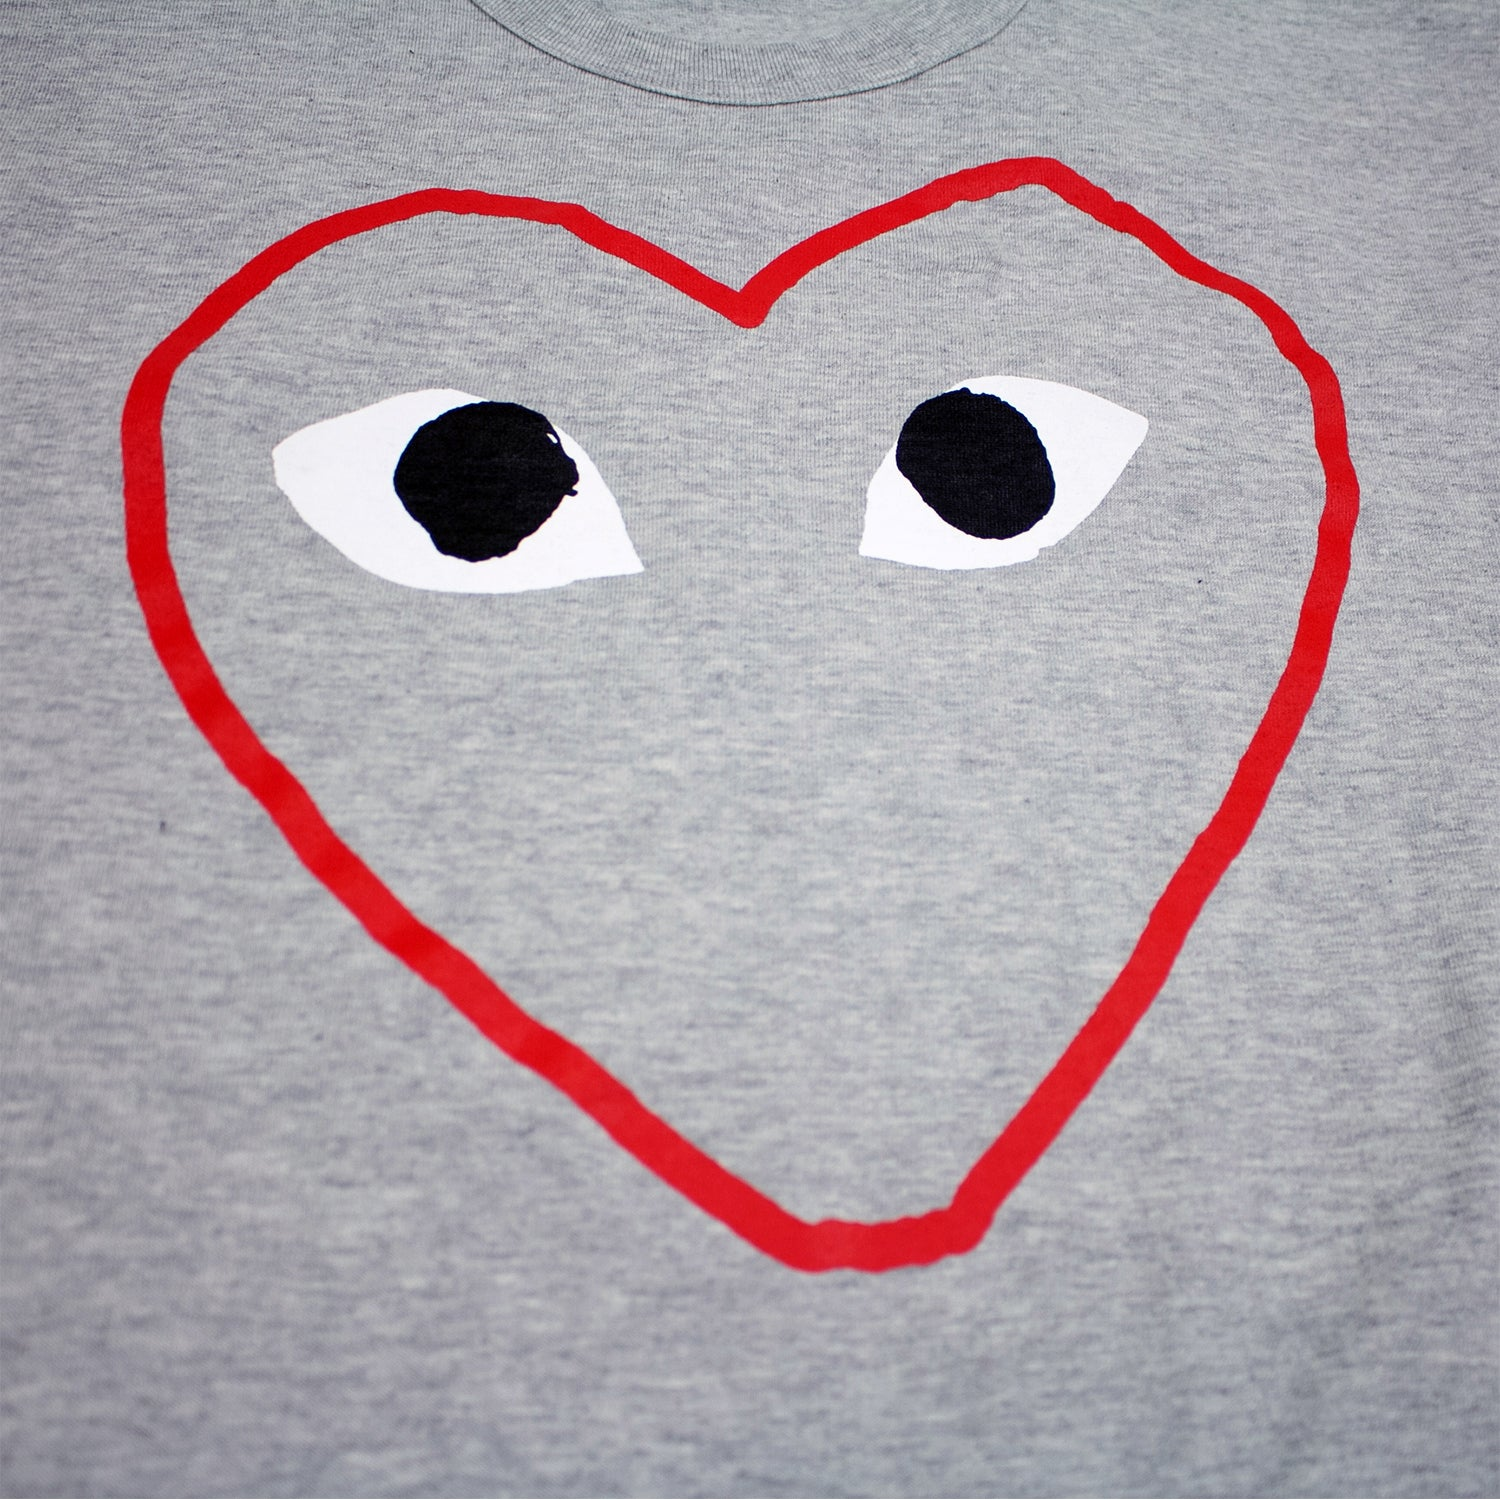 T-SHIRT WITH RED HEART OUTLINE